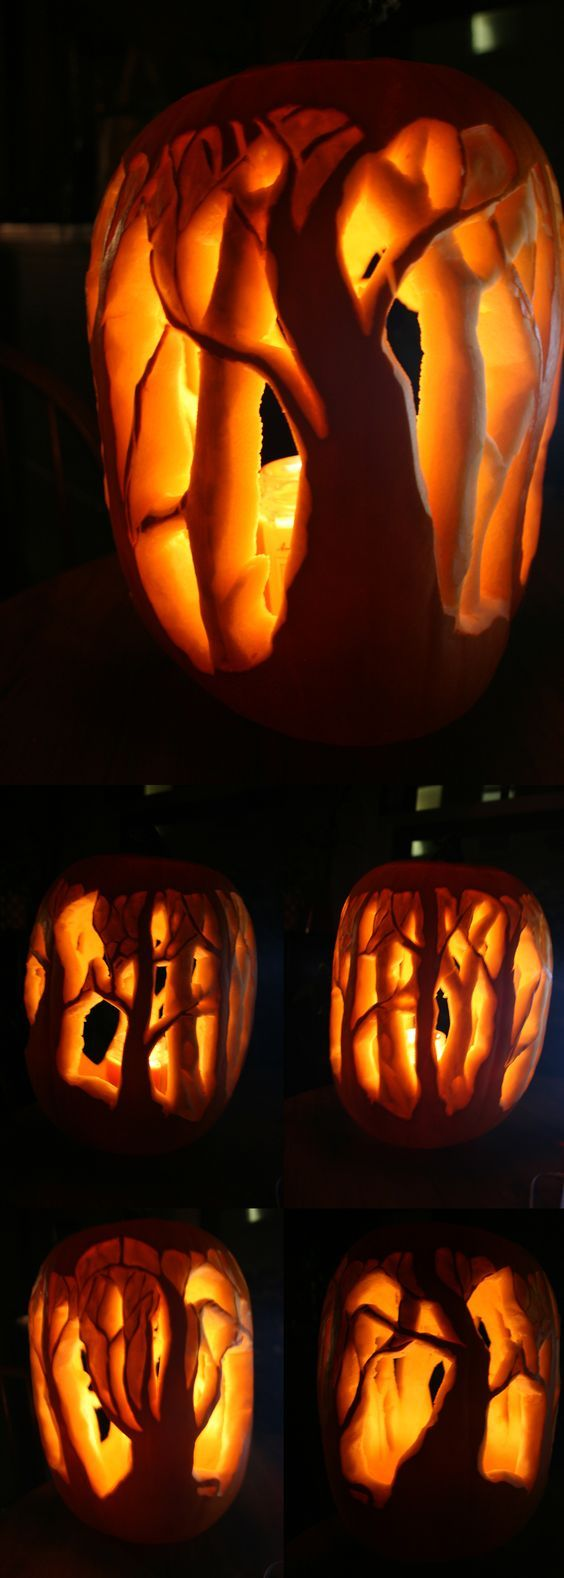 111 world s coolest pumpkin designs to carve this fall. Black Bedroom Furniture Sets. Home Design Ideas